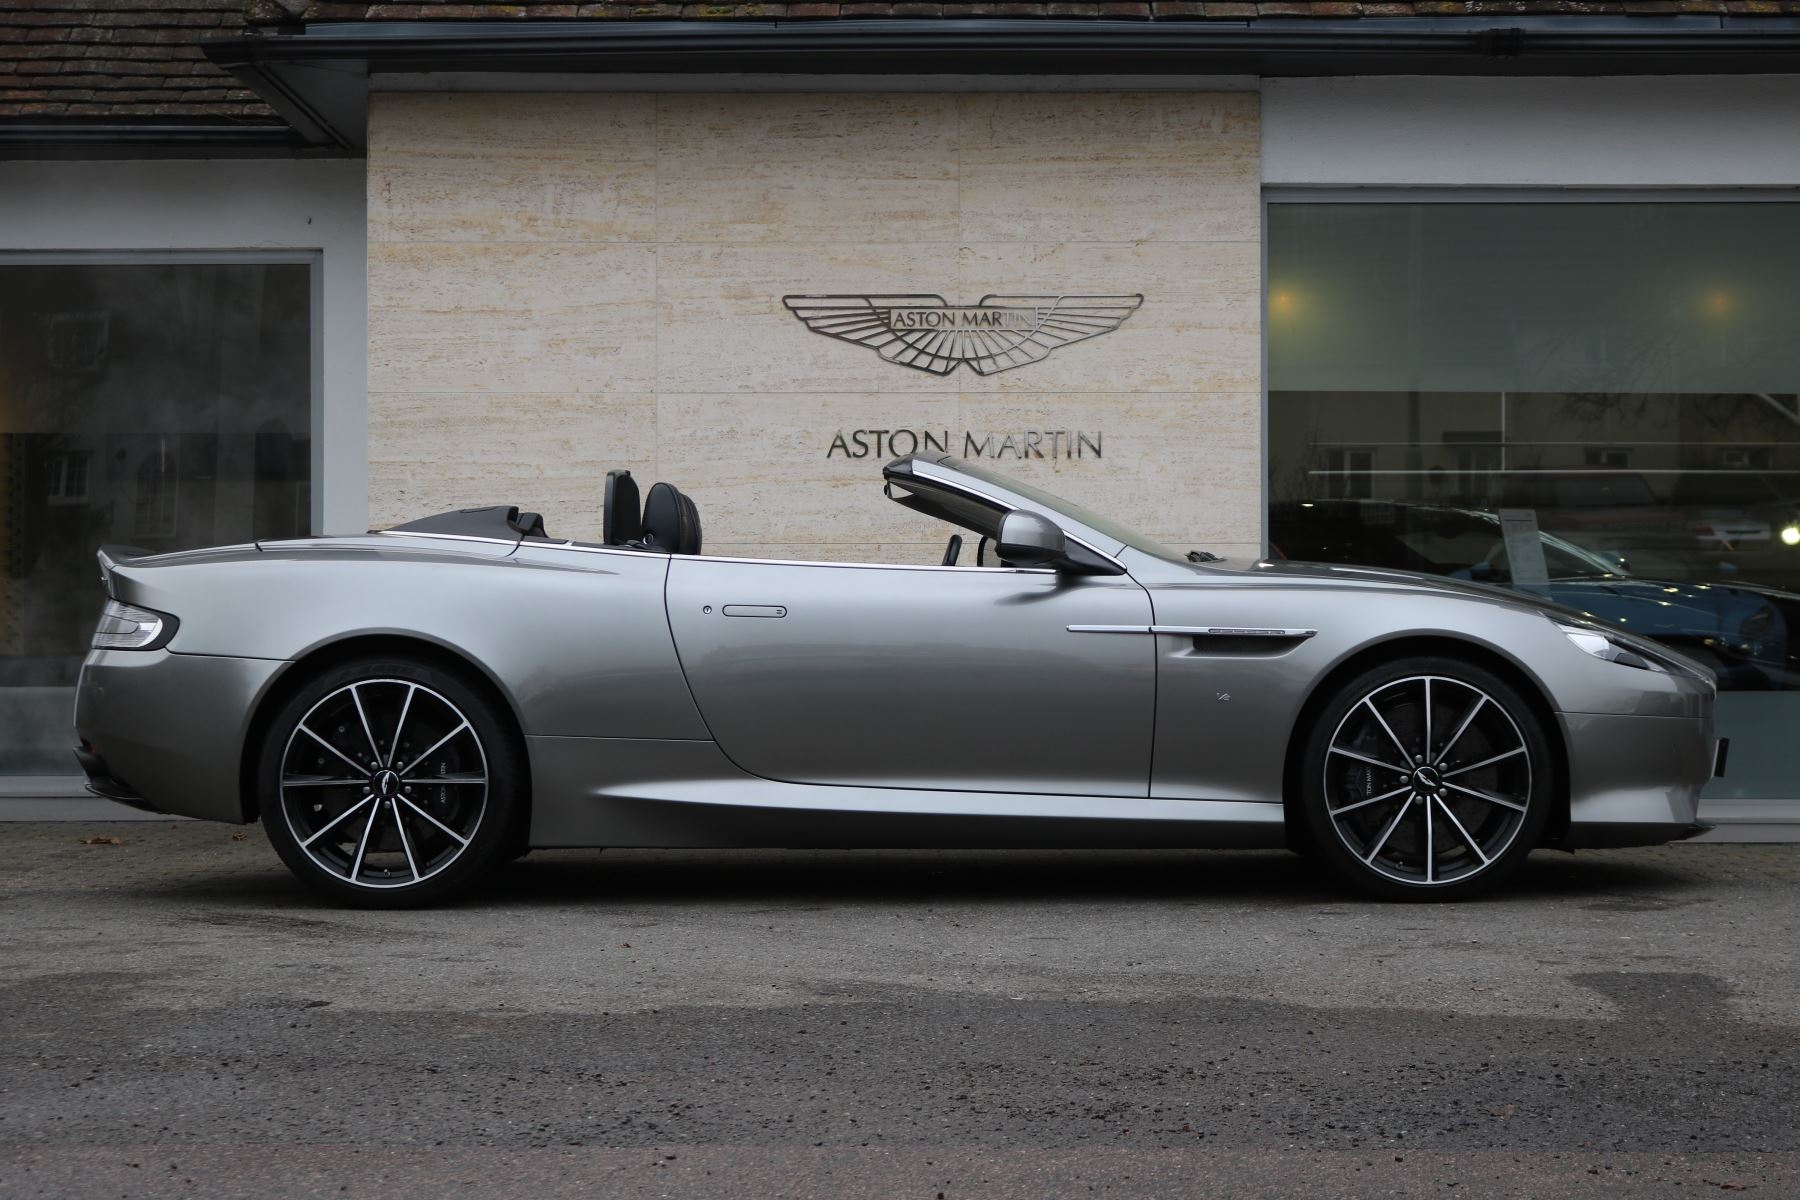 aston martin db9 v12 gt 2dr volante touchtronic 5.9 automatic